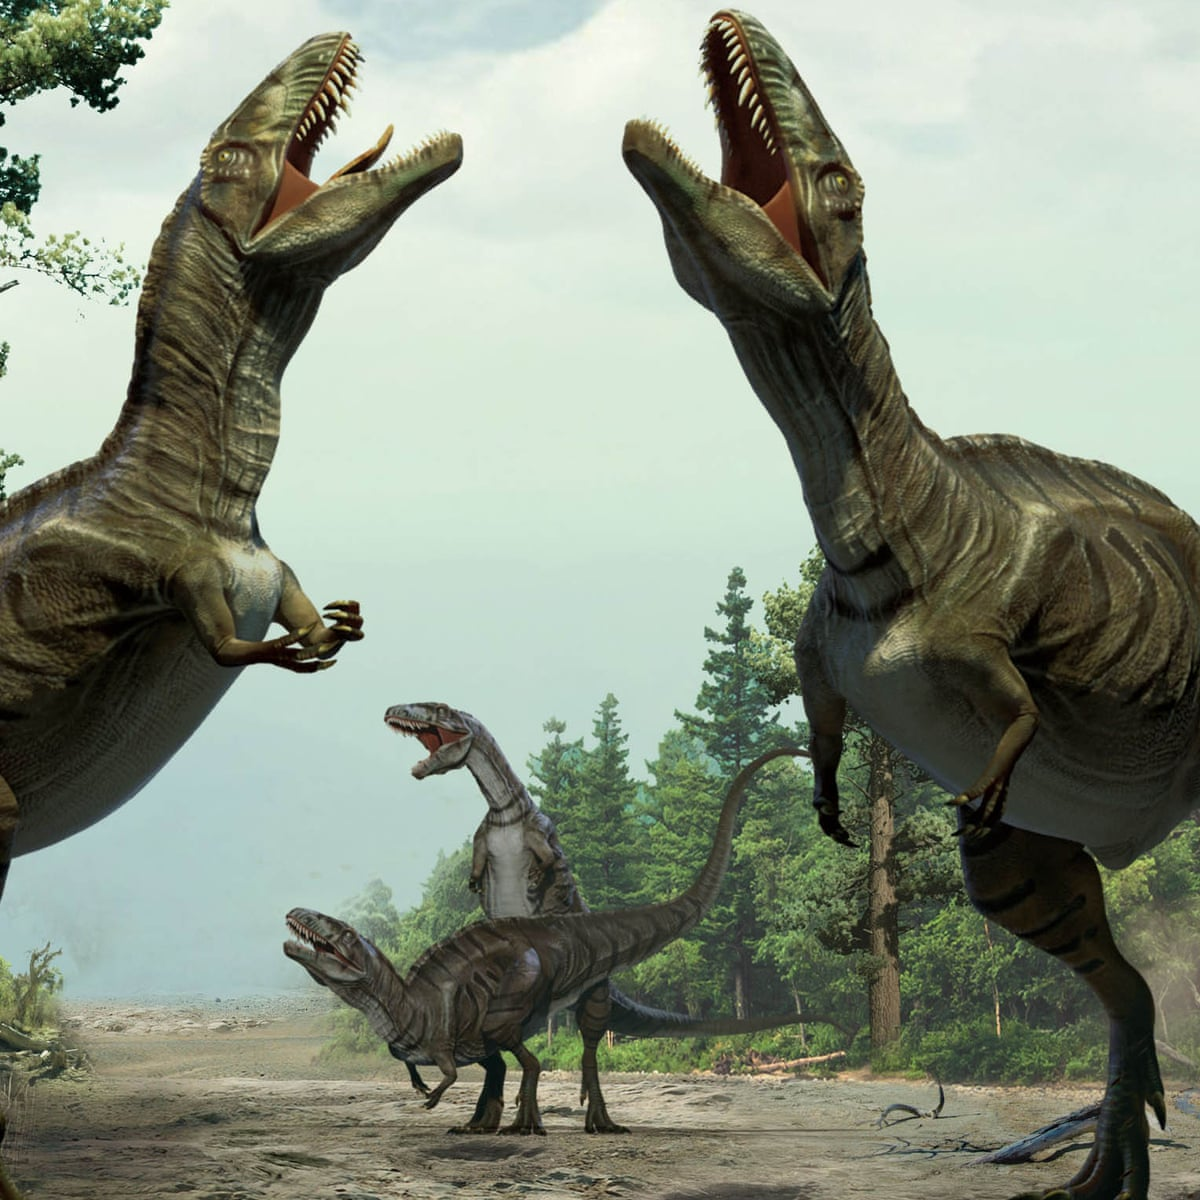 Dinosaurs performed dances to woo mates, according to new evidence |  Dinosaurs | The Guardian